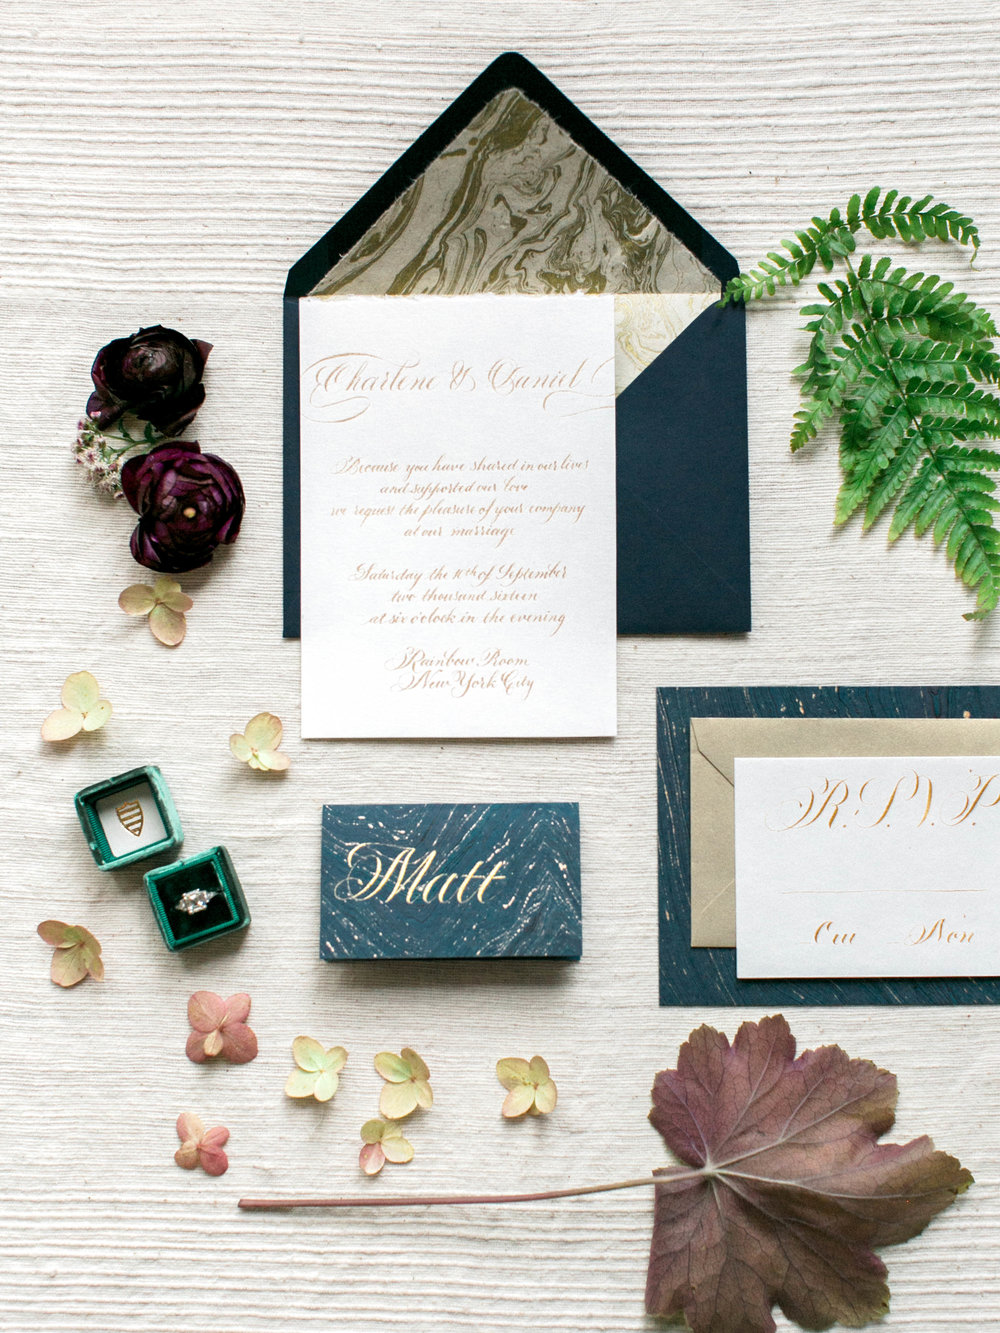 Calligraphy wedding invitation suite by Chavelli | www.chavelli.com